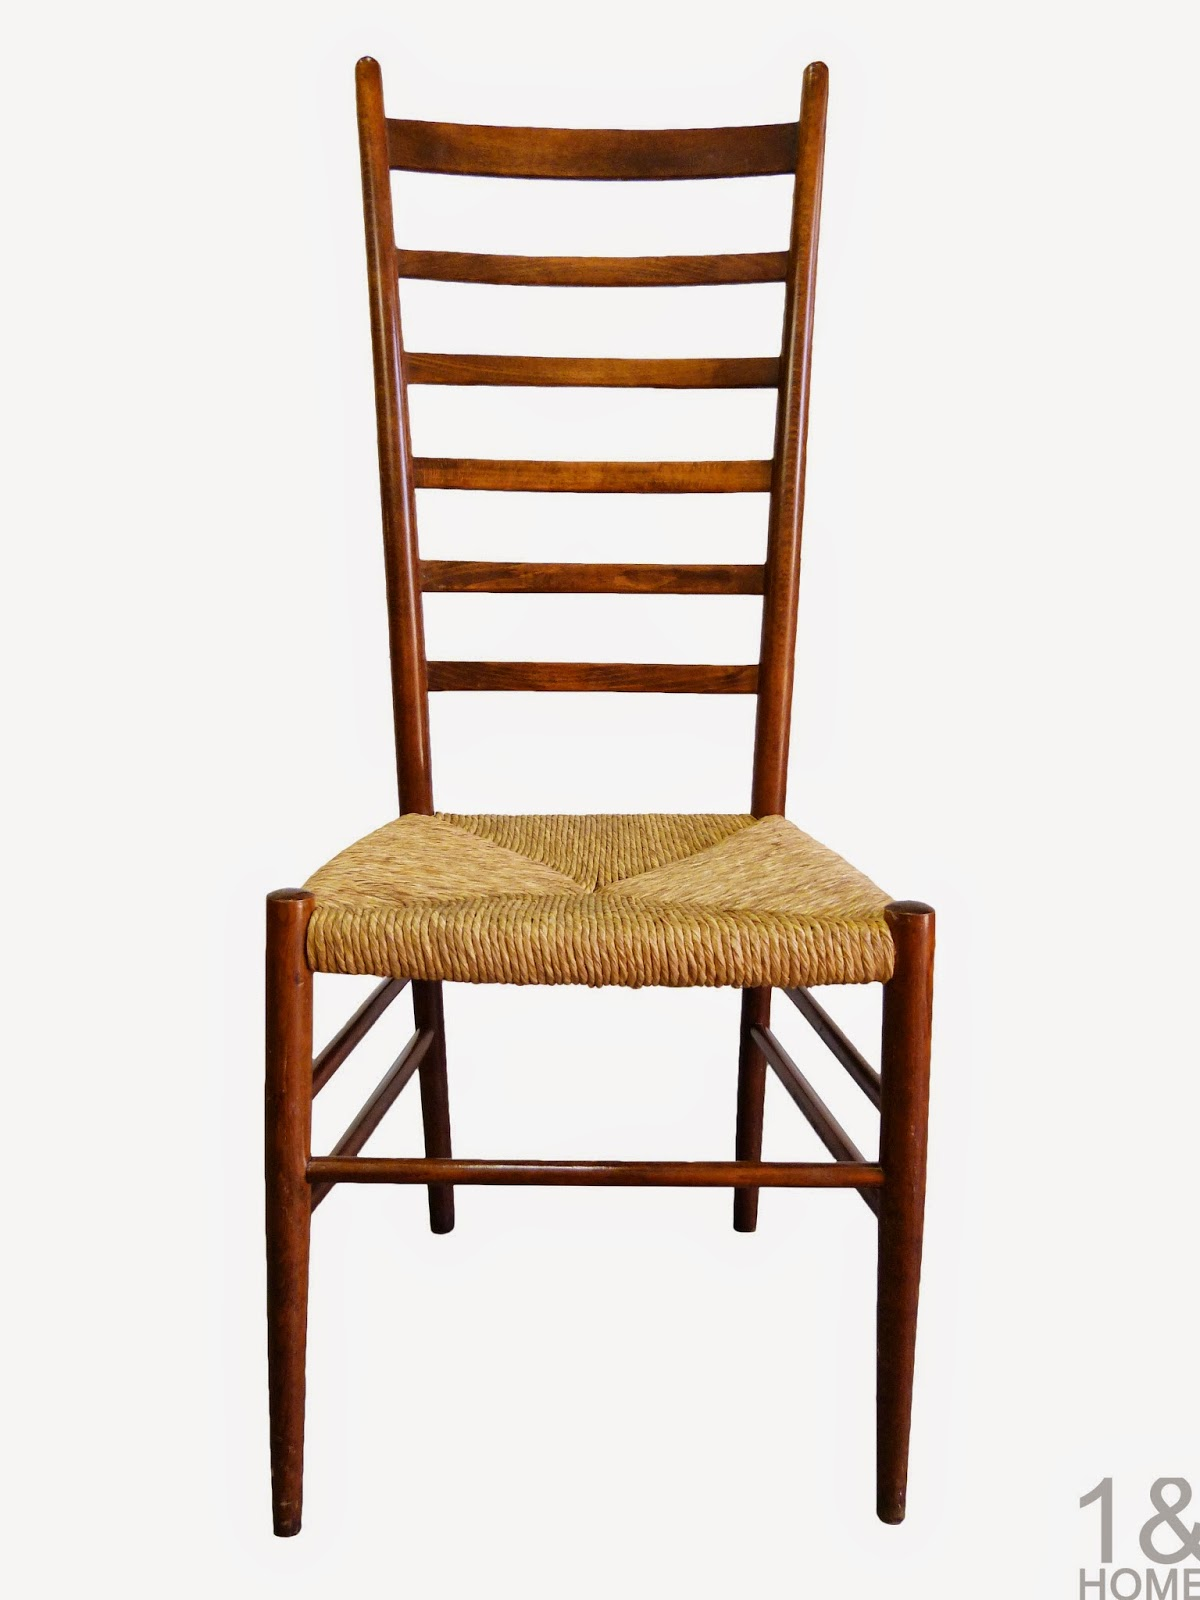 Gio-Ponti Style Italy Tall Ladder Back Rush Rope Chair